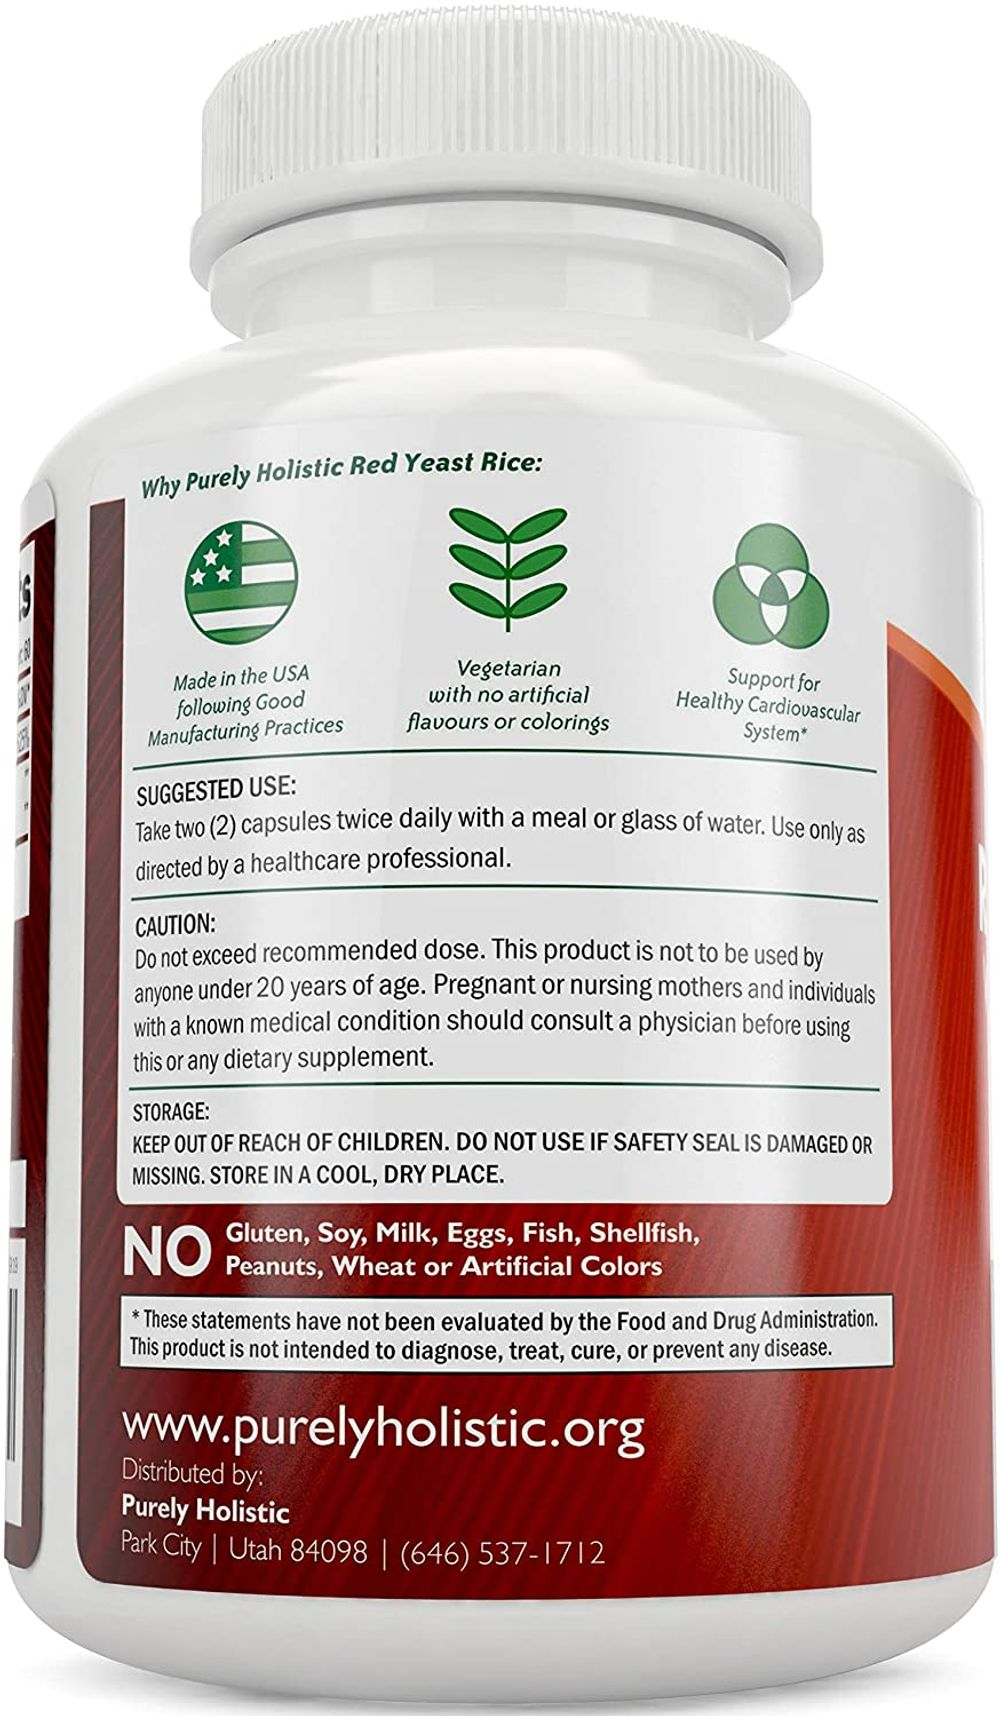 Red Yeast Rice 1200mg with CoQ10 & Flush Free Niacin 120 Vegetarian Capsules - Non Irradiated, Citrinin Free, Supports Healthy Cholesterol Levels & Cardiovascular System